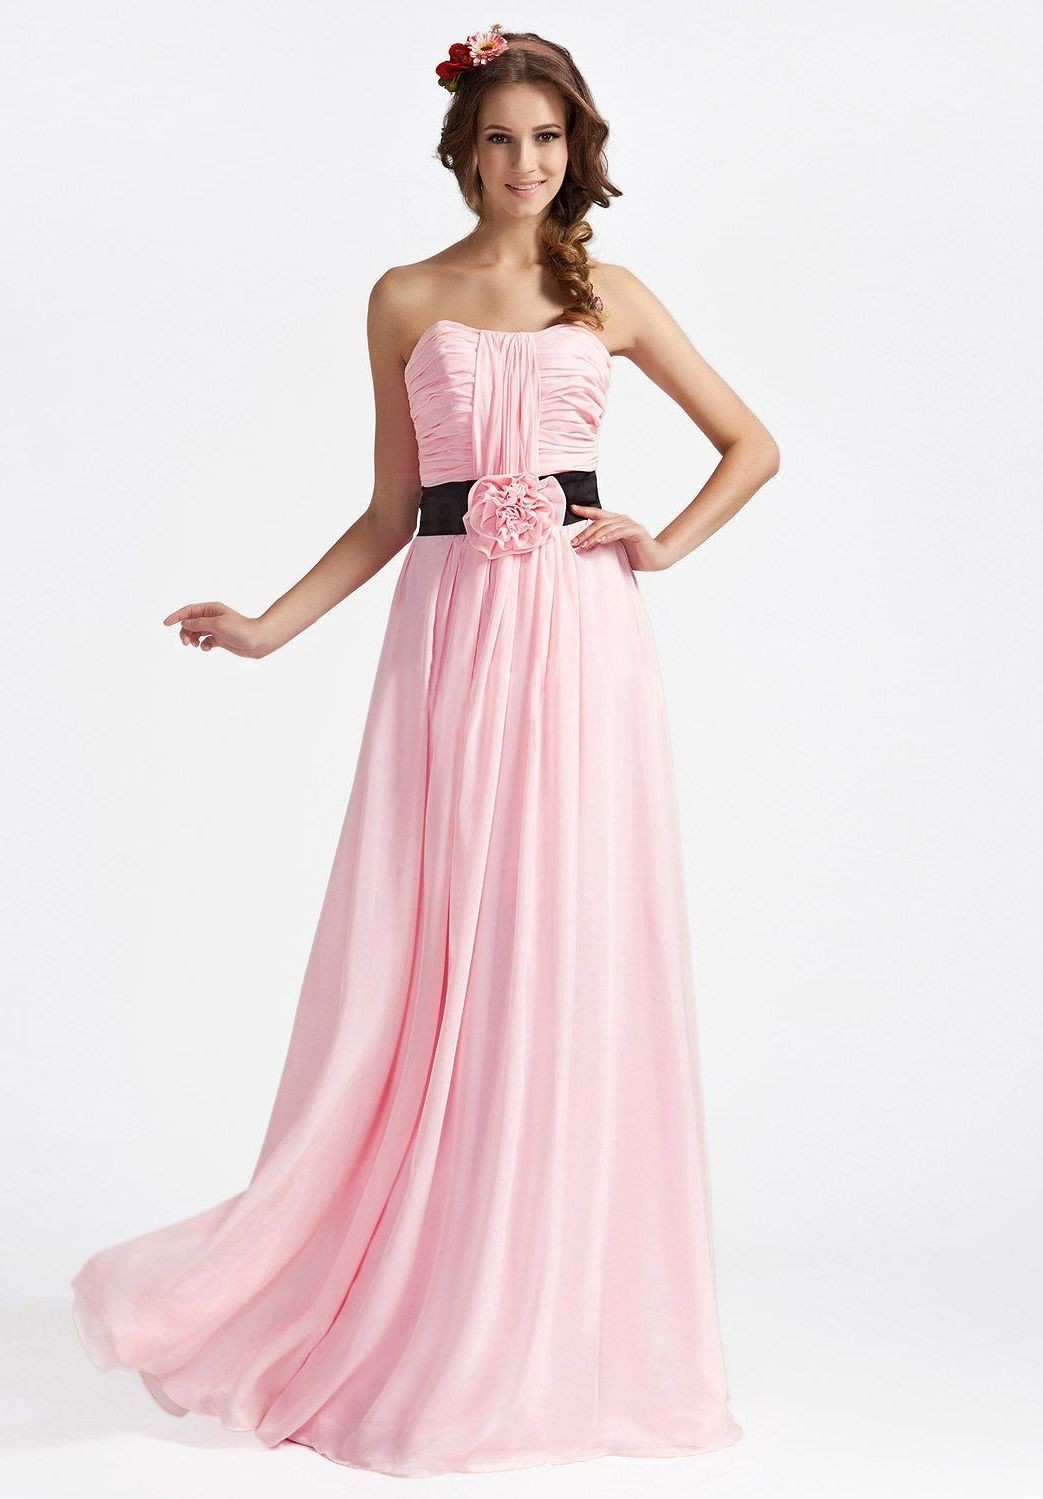 WhiteAzalea Bridesmaid Dresses: Romantic Pink Bridesmaid